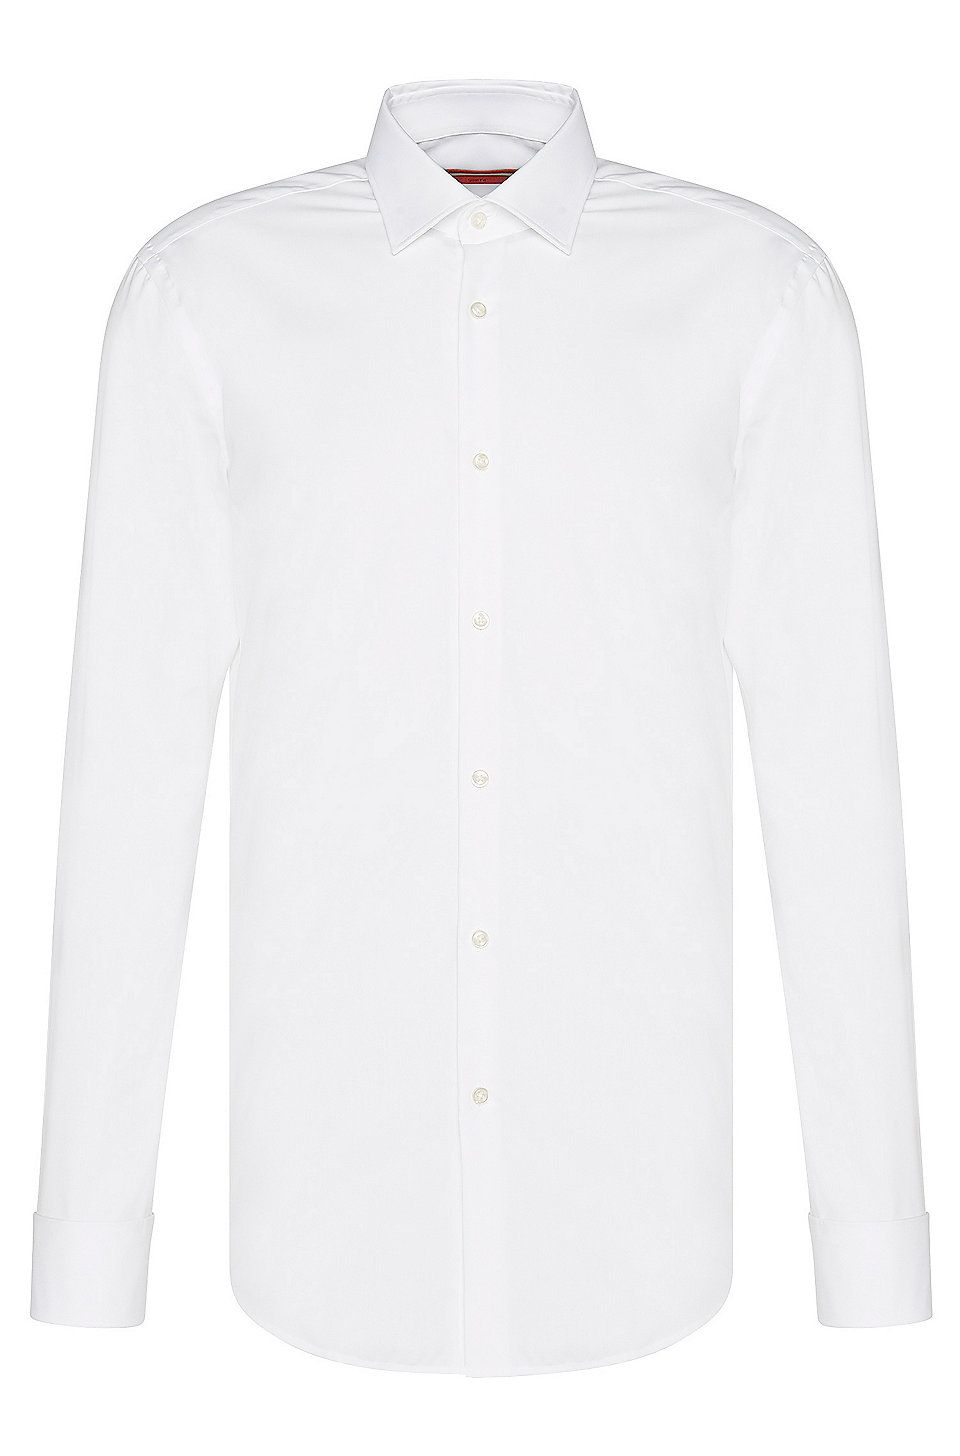 d2cd45a20 Hugo Boss Slim-fit business shirt with French cuffs - White Shirts from HUGO  for Men in the official HUGO BOSS Online Store free shipping